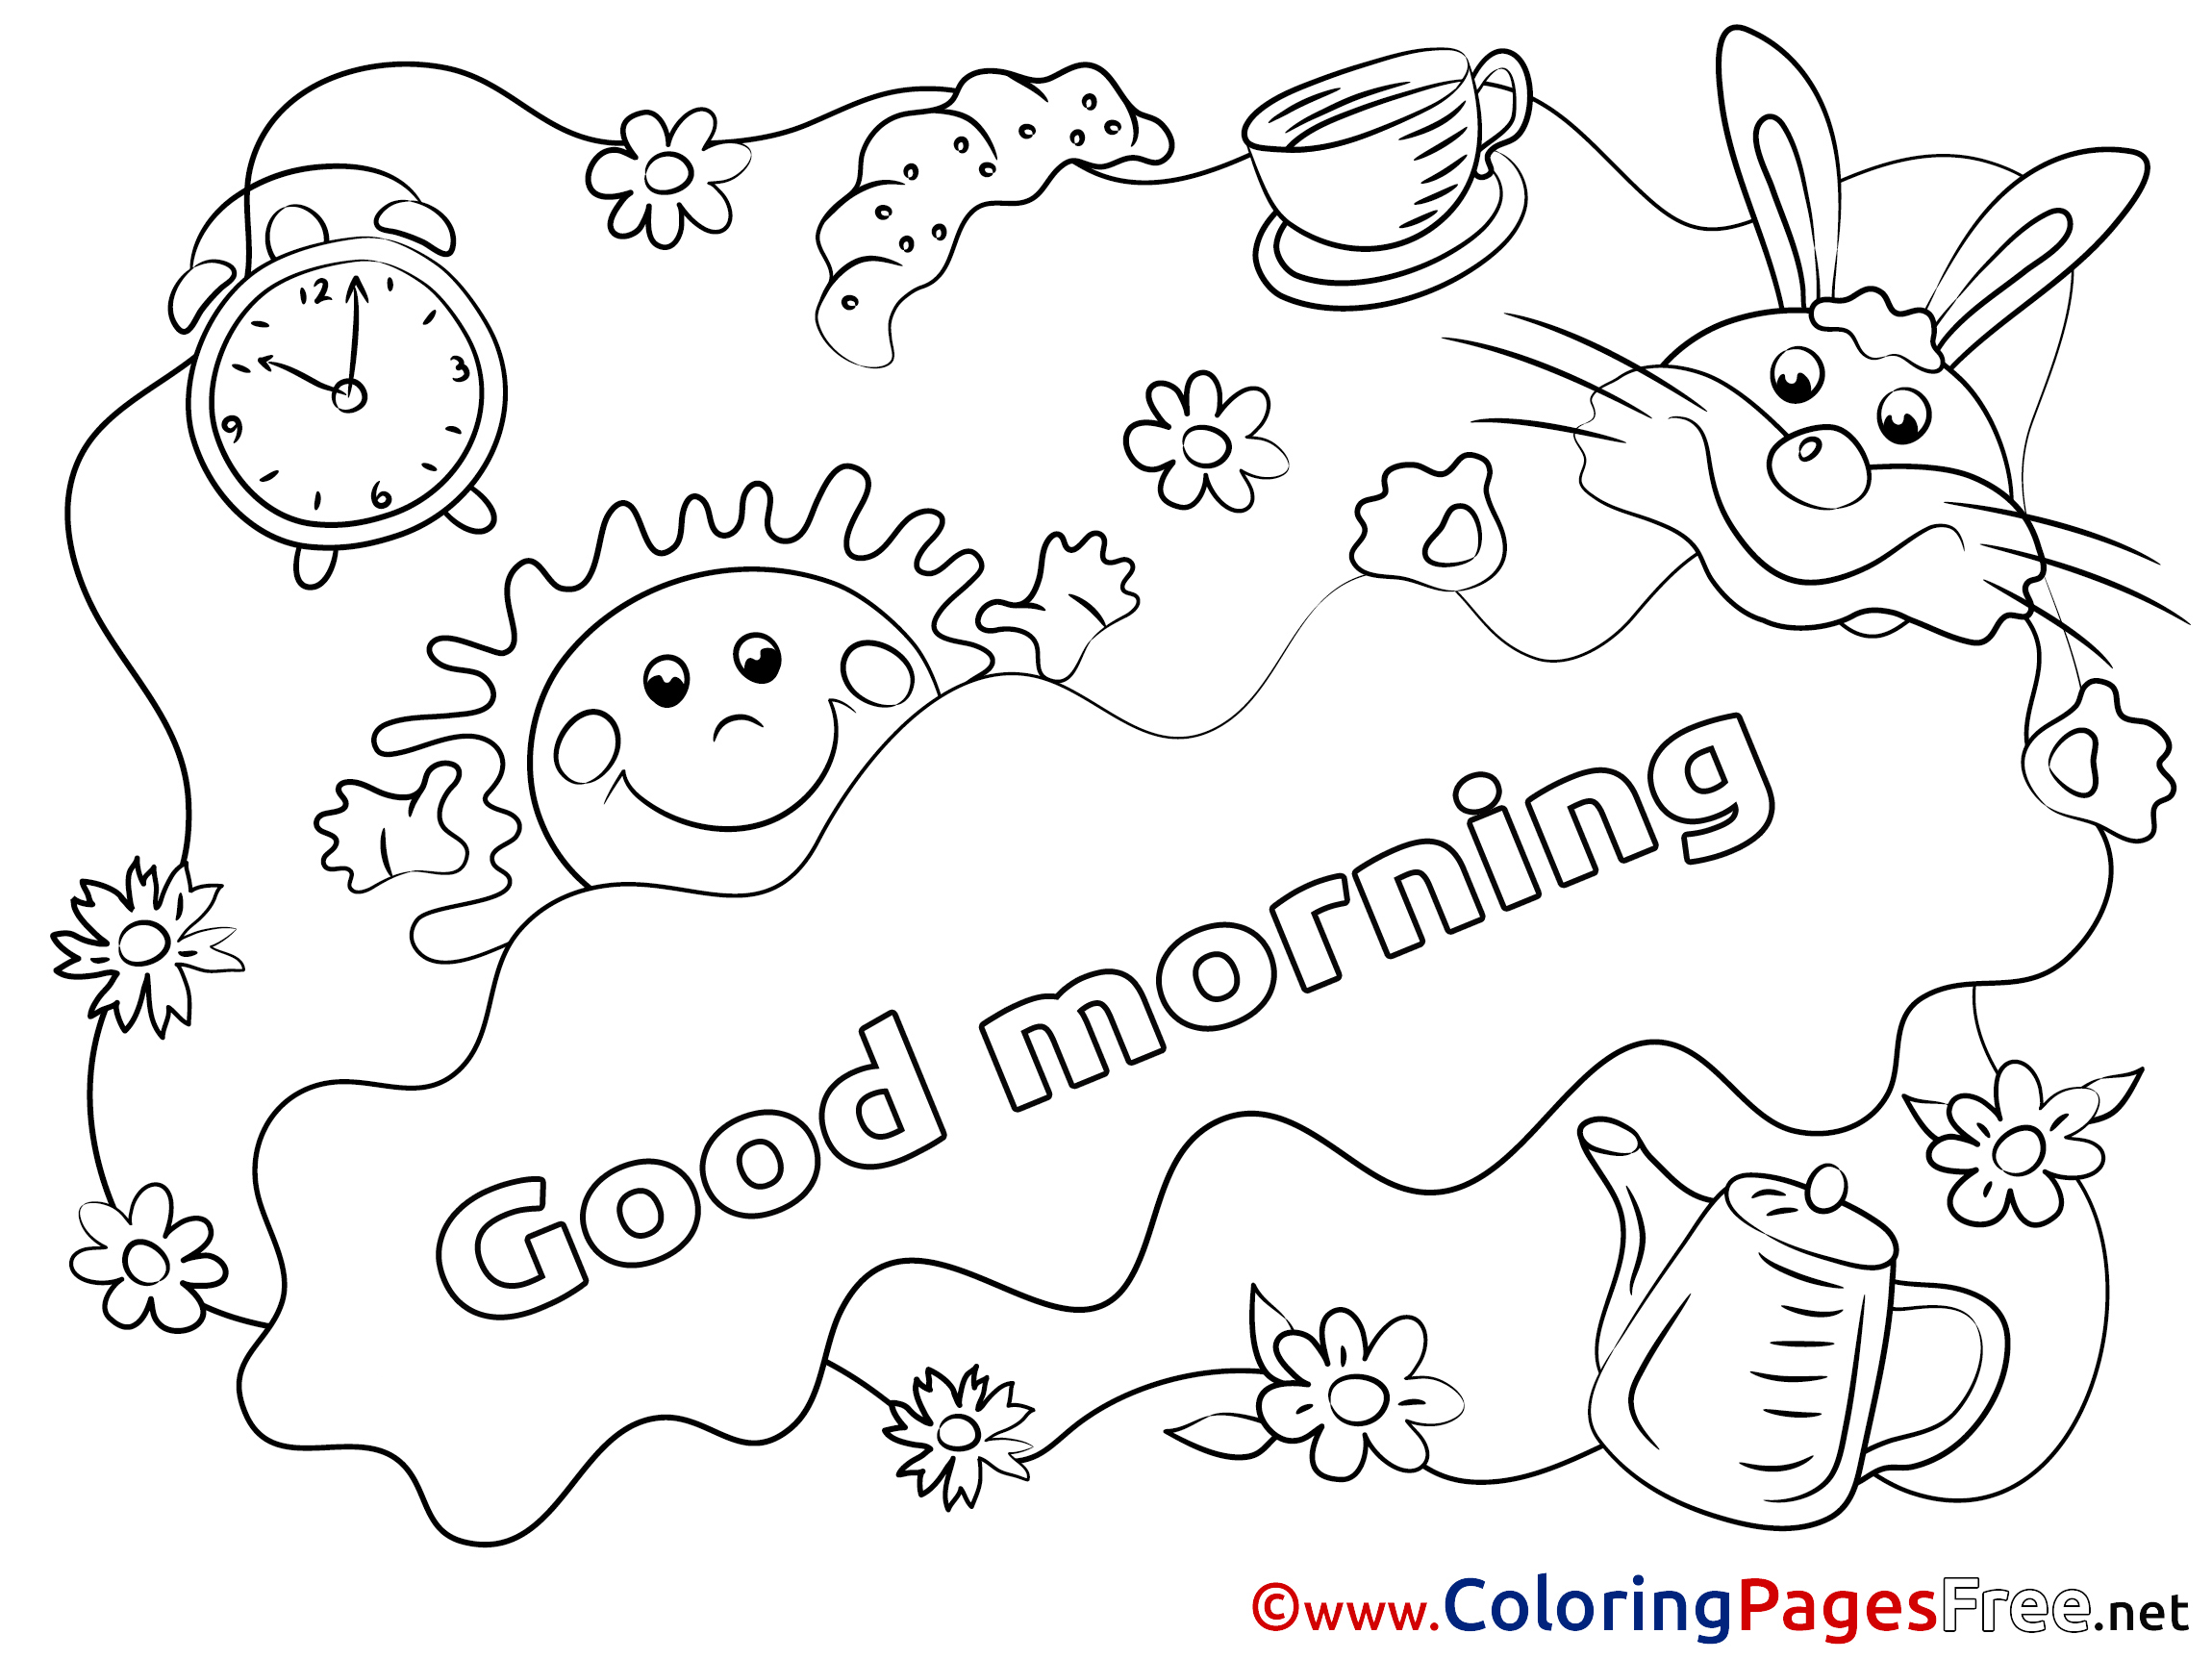 Good Morning Coloring Page Sketch Coloring Page